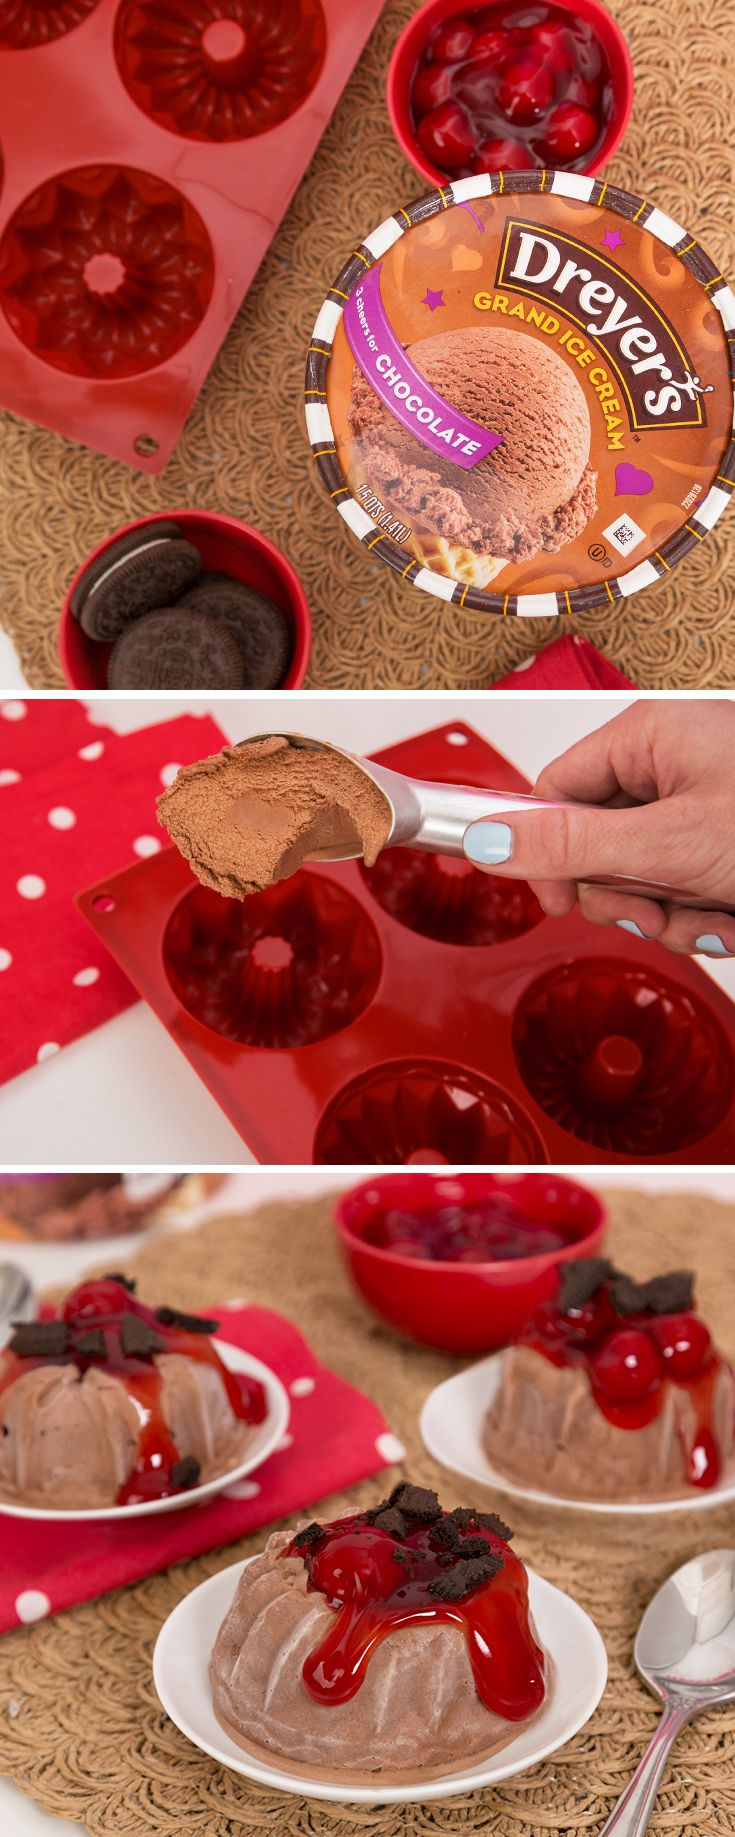 """Dreyer's Mini Ice Cream Volcanoes: Your kids will erupt with excitement when they help you make these tasty, back-to-school-inspired frozen treats! Simply take a mini bundt cake pan and mold Dreyer's Chocolate Grand Ice Cream into it. After freezing the ice cream, pop them out of the pan. Craving cherries this season? Before serving, pour cherry pie filling over the top to create the volcano """"lava"""" and add cookie crumbles to be the """"dirt"""" of the volcano."""